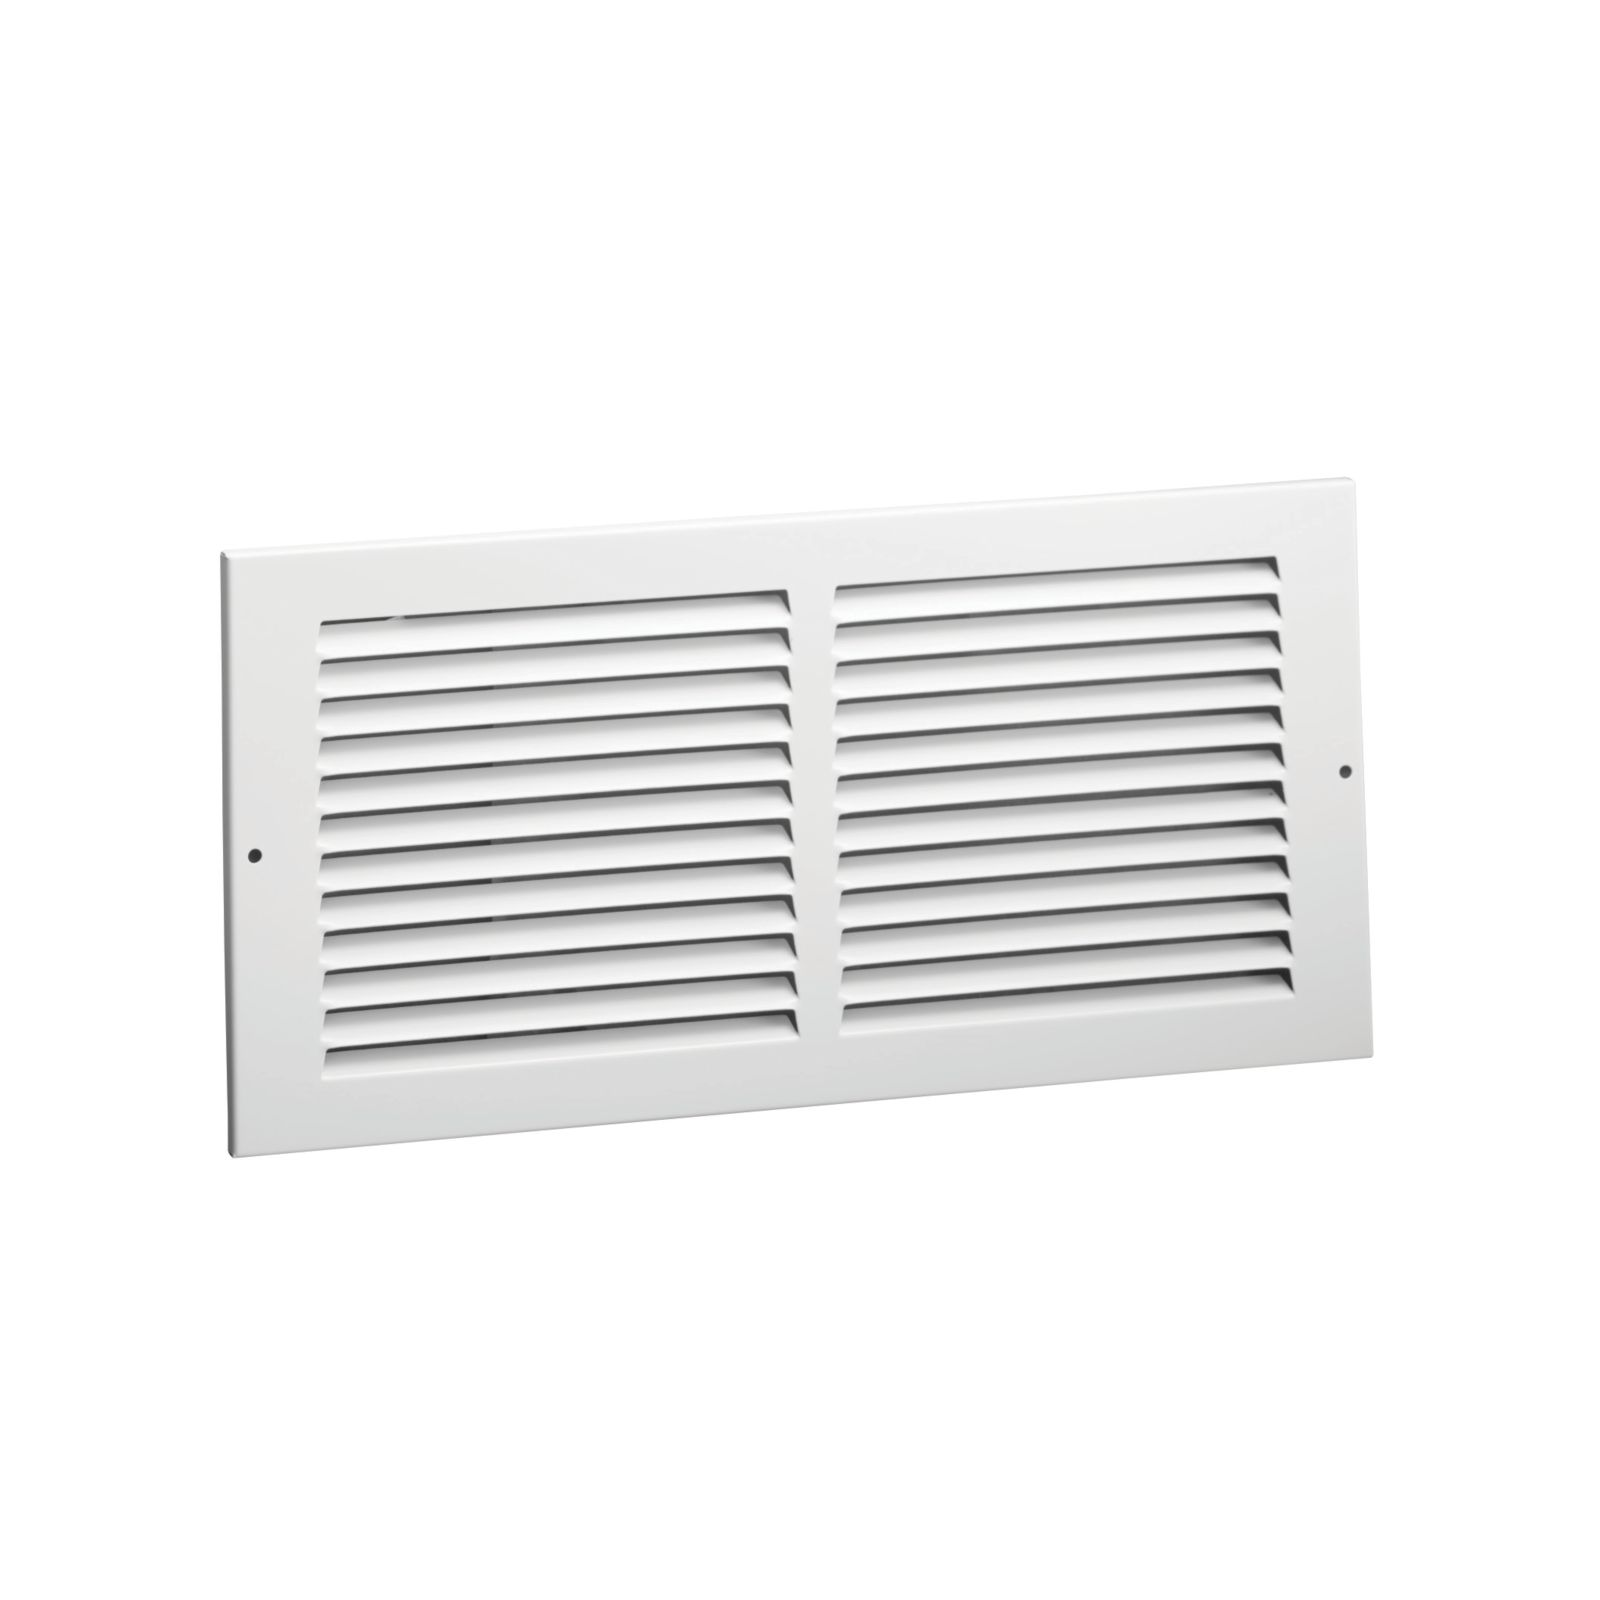 "Hart & Cooley 043363 - #672 Steel Return Air Grille, White Finish, 24"" X 8"""